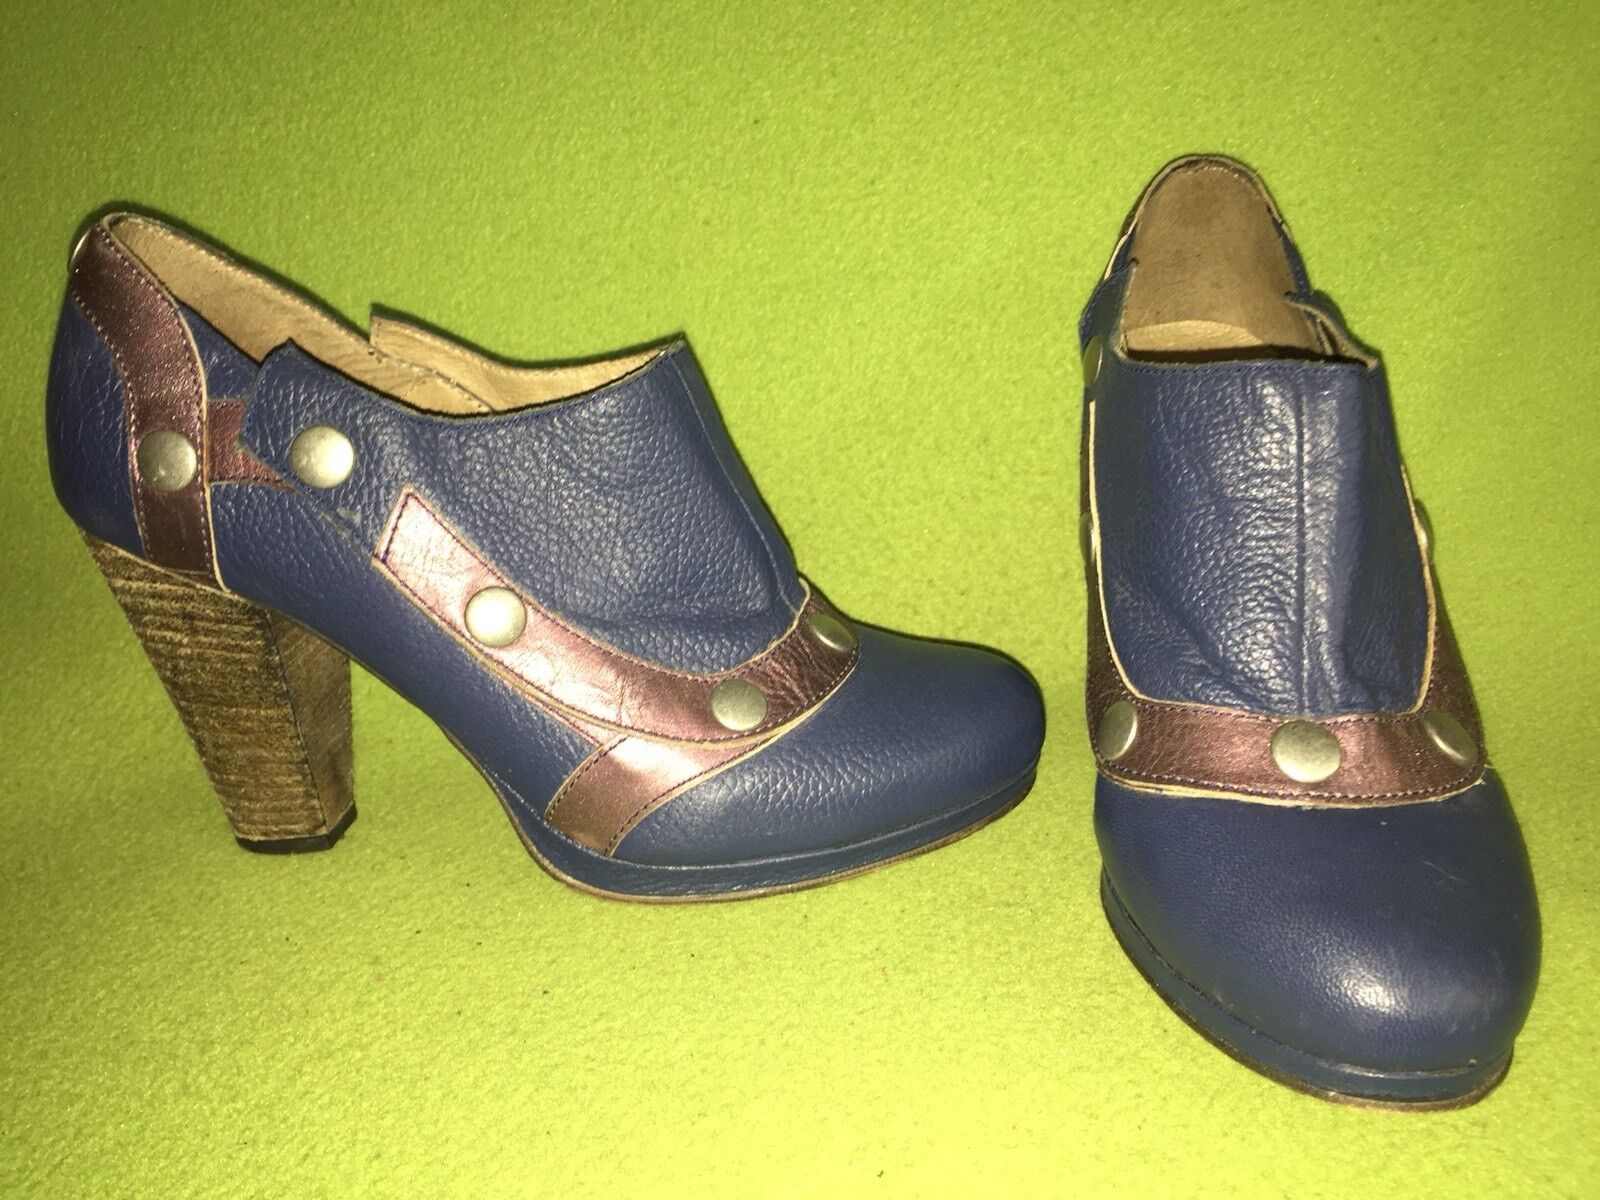 bluee & Purple DKODE Heels with Removable Snap-On Tops 9 40